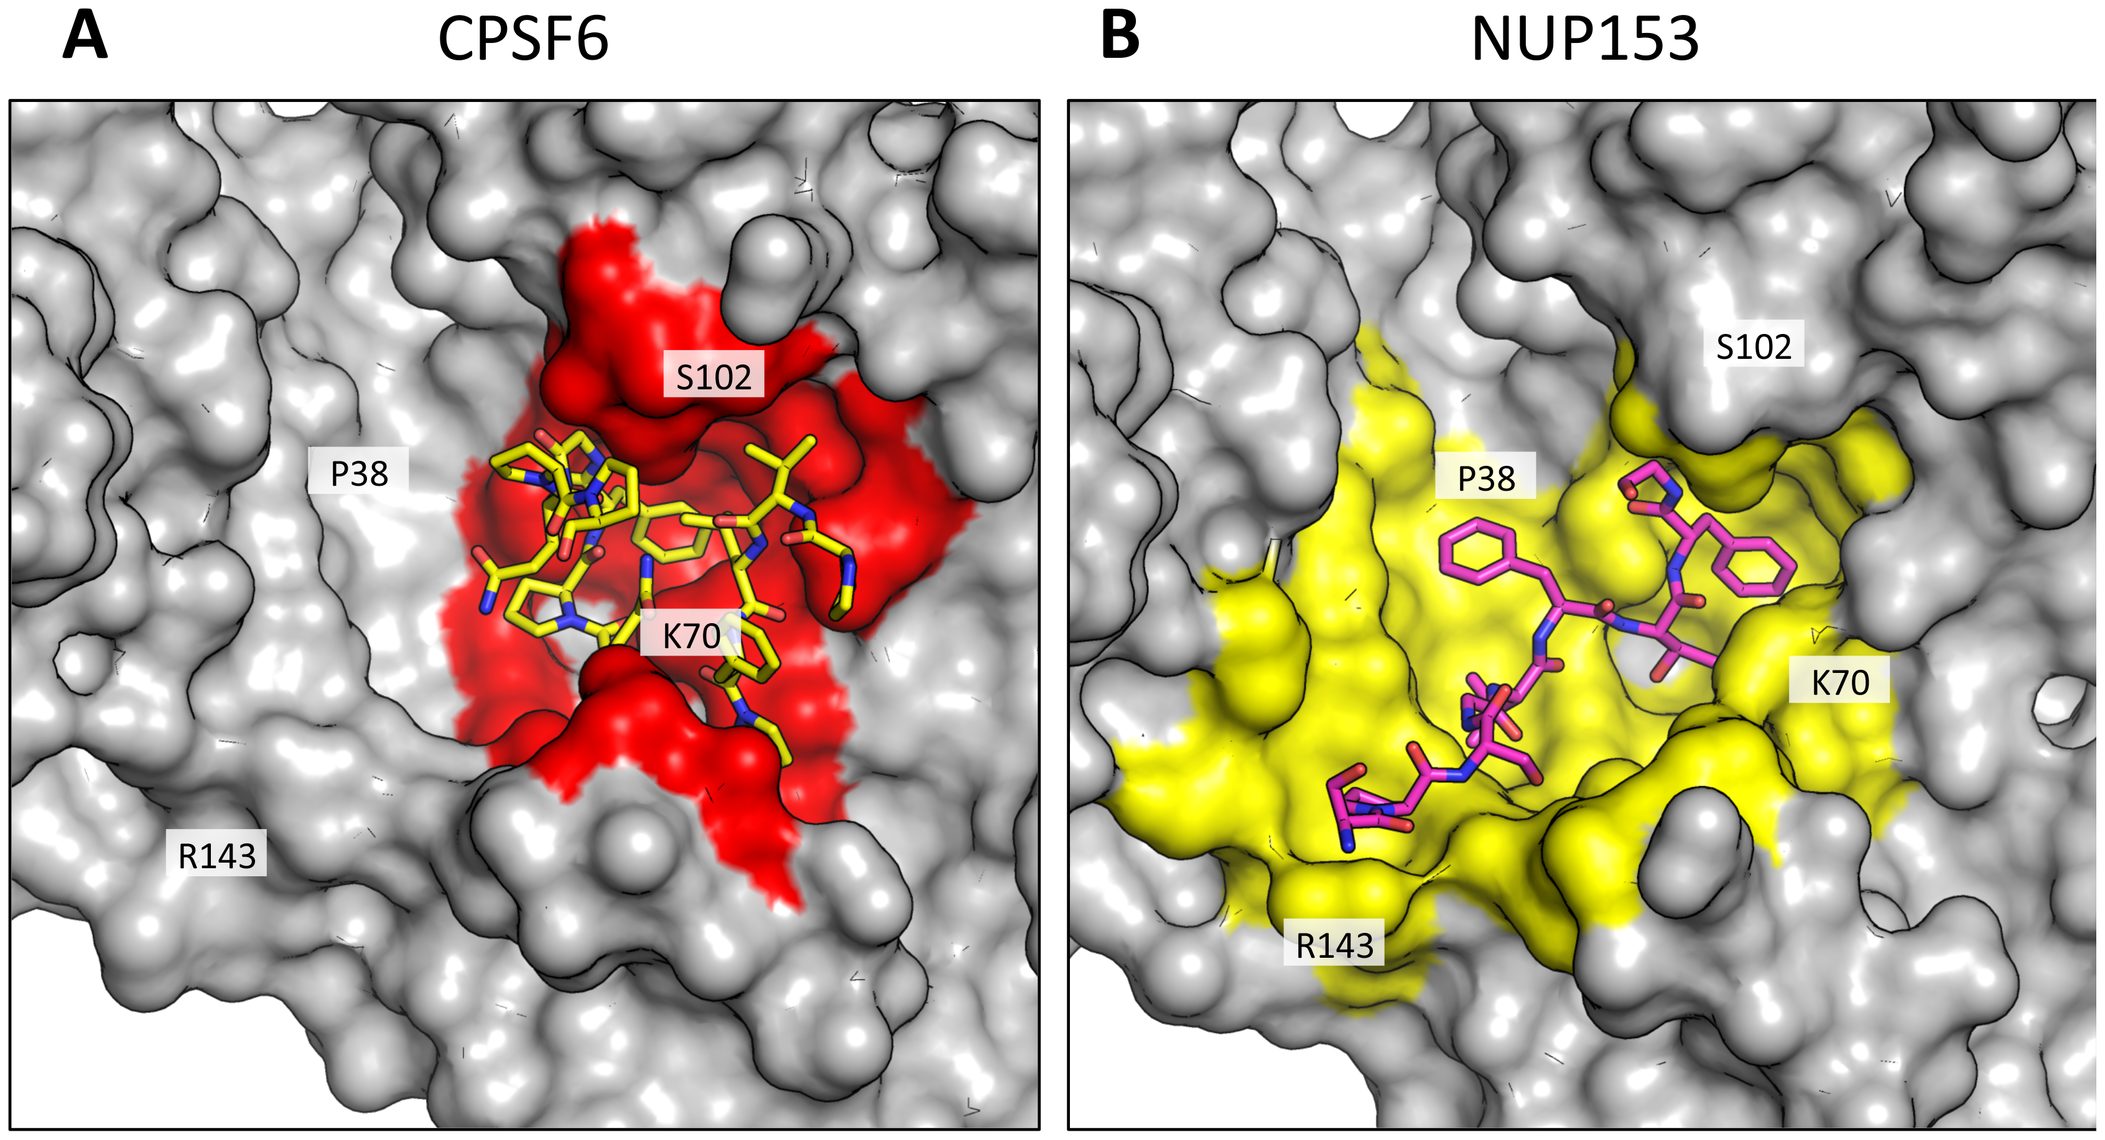 CPSF6 and NUP153 interact with distinct sets of CA residues within the hexamer interface.